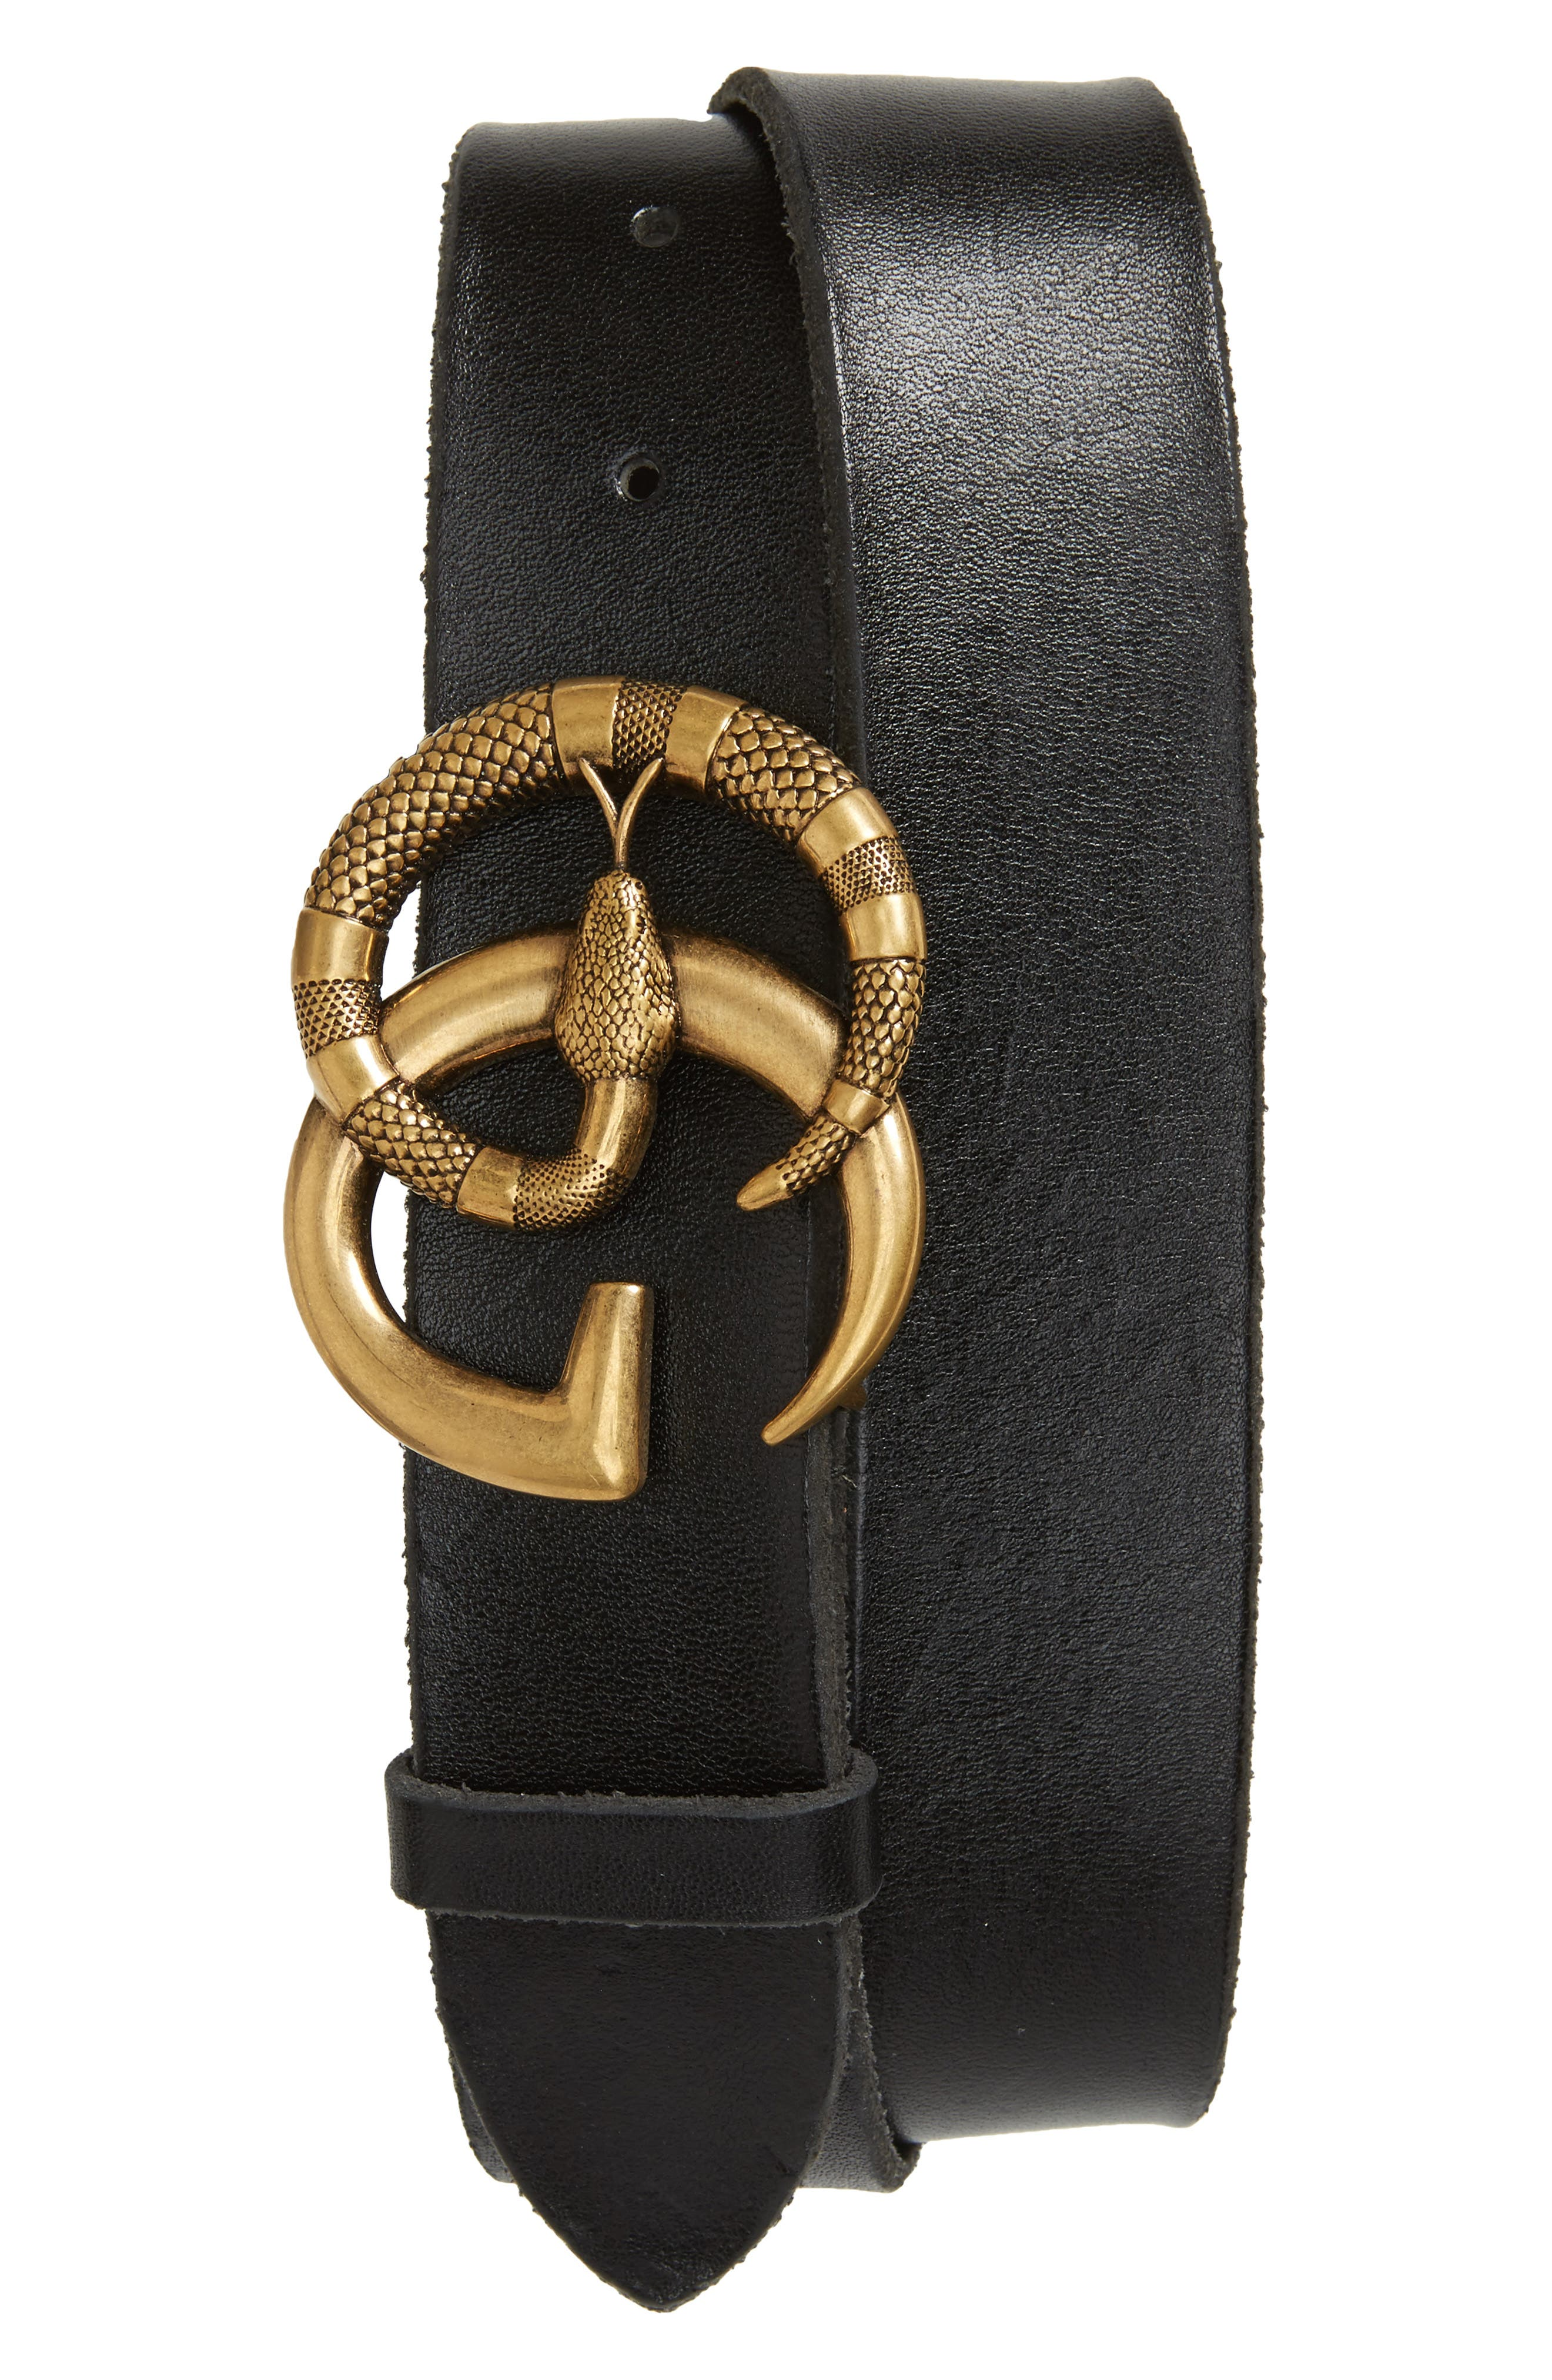 GG Marmont Snake Buckle Leather Belt,                             Main thumbnail 1, color,                             001